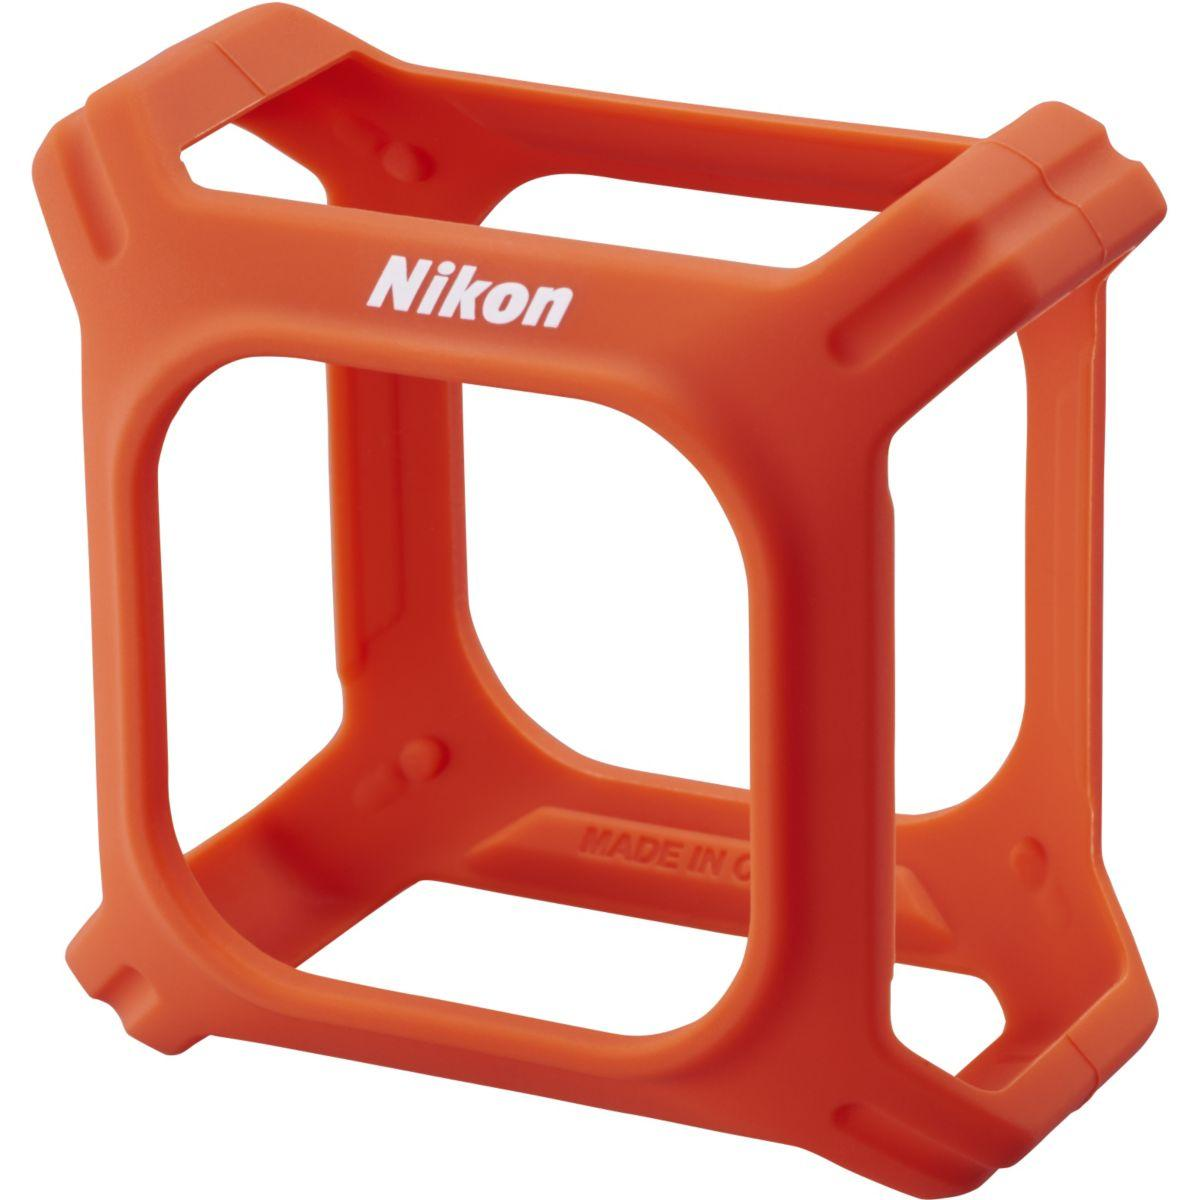 Boitier nikon silicone orange keymission (photo)